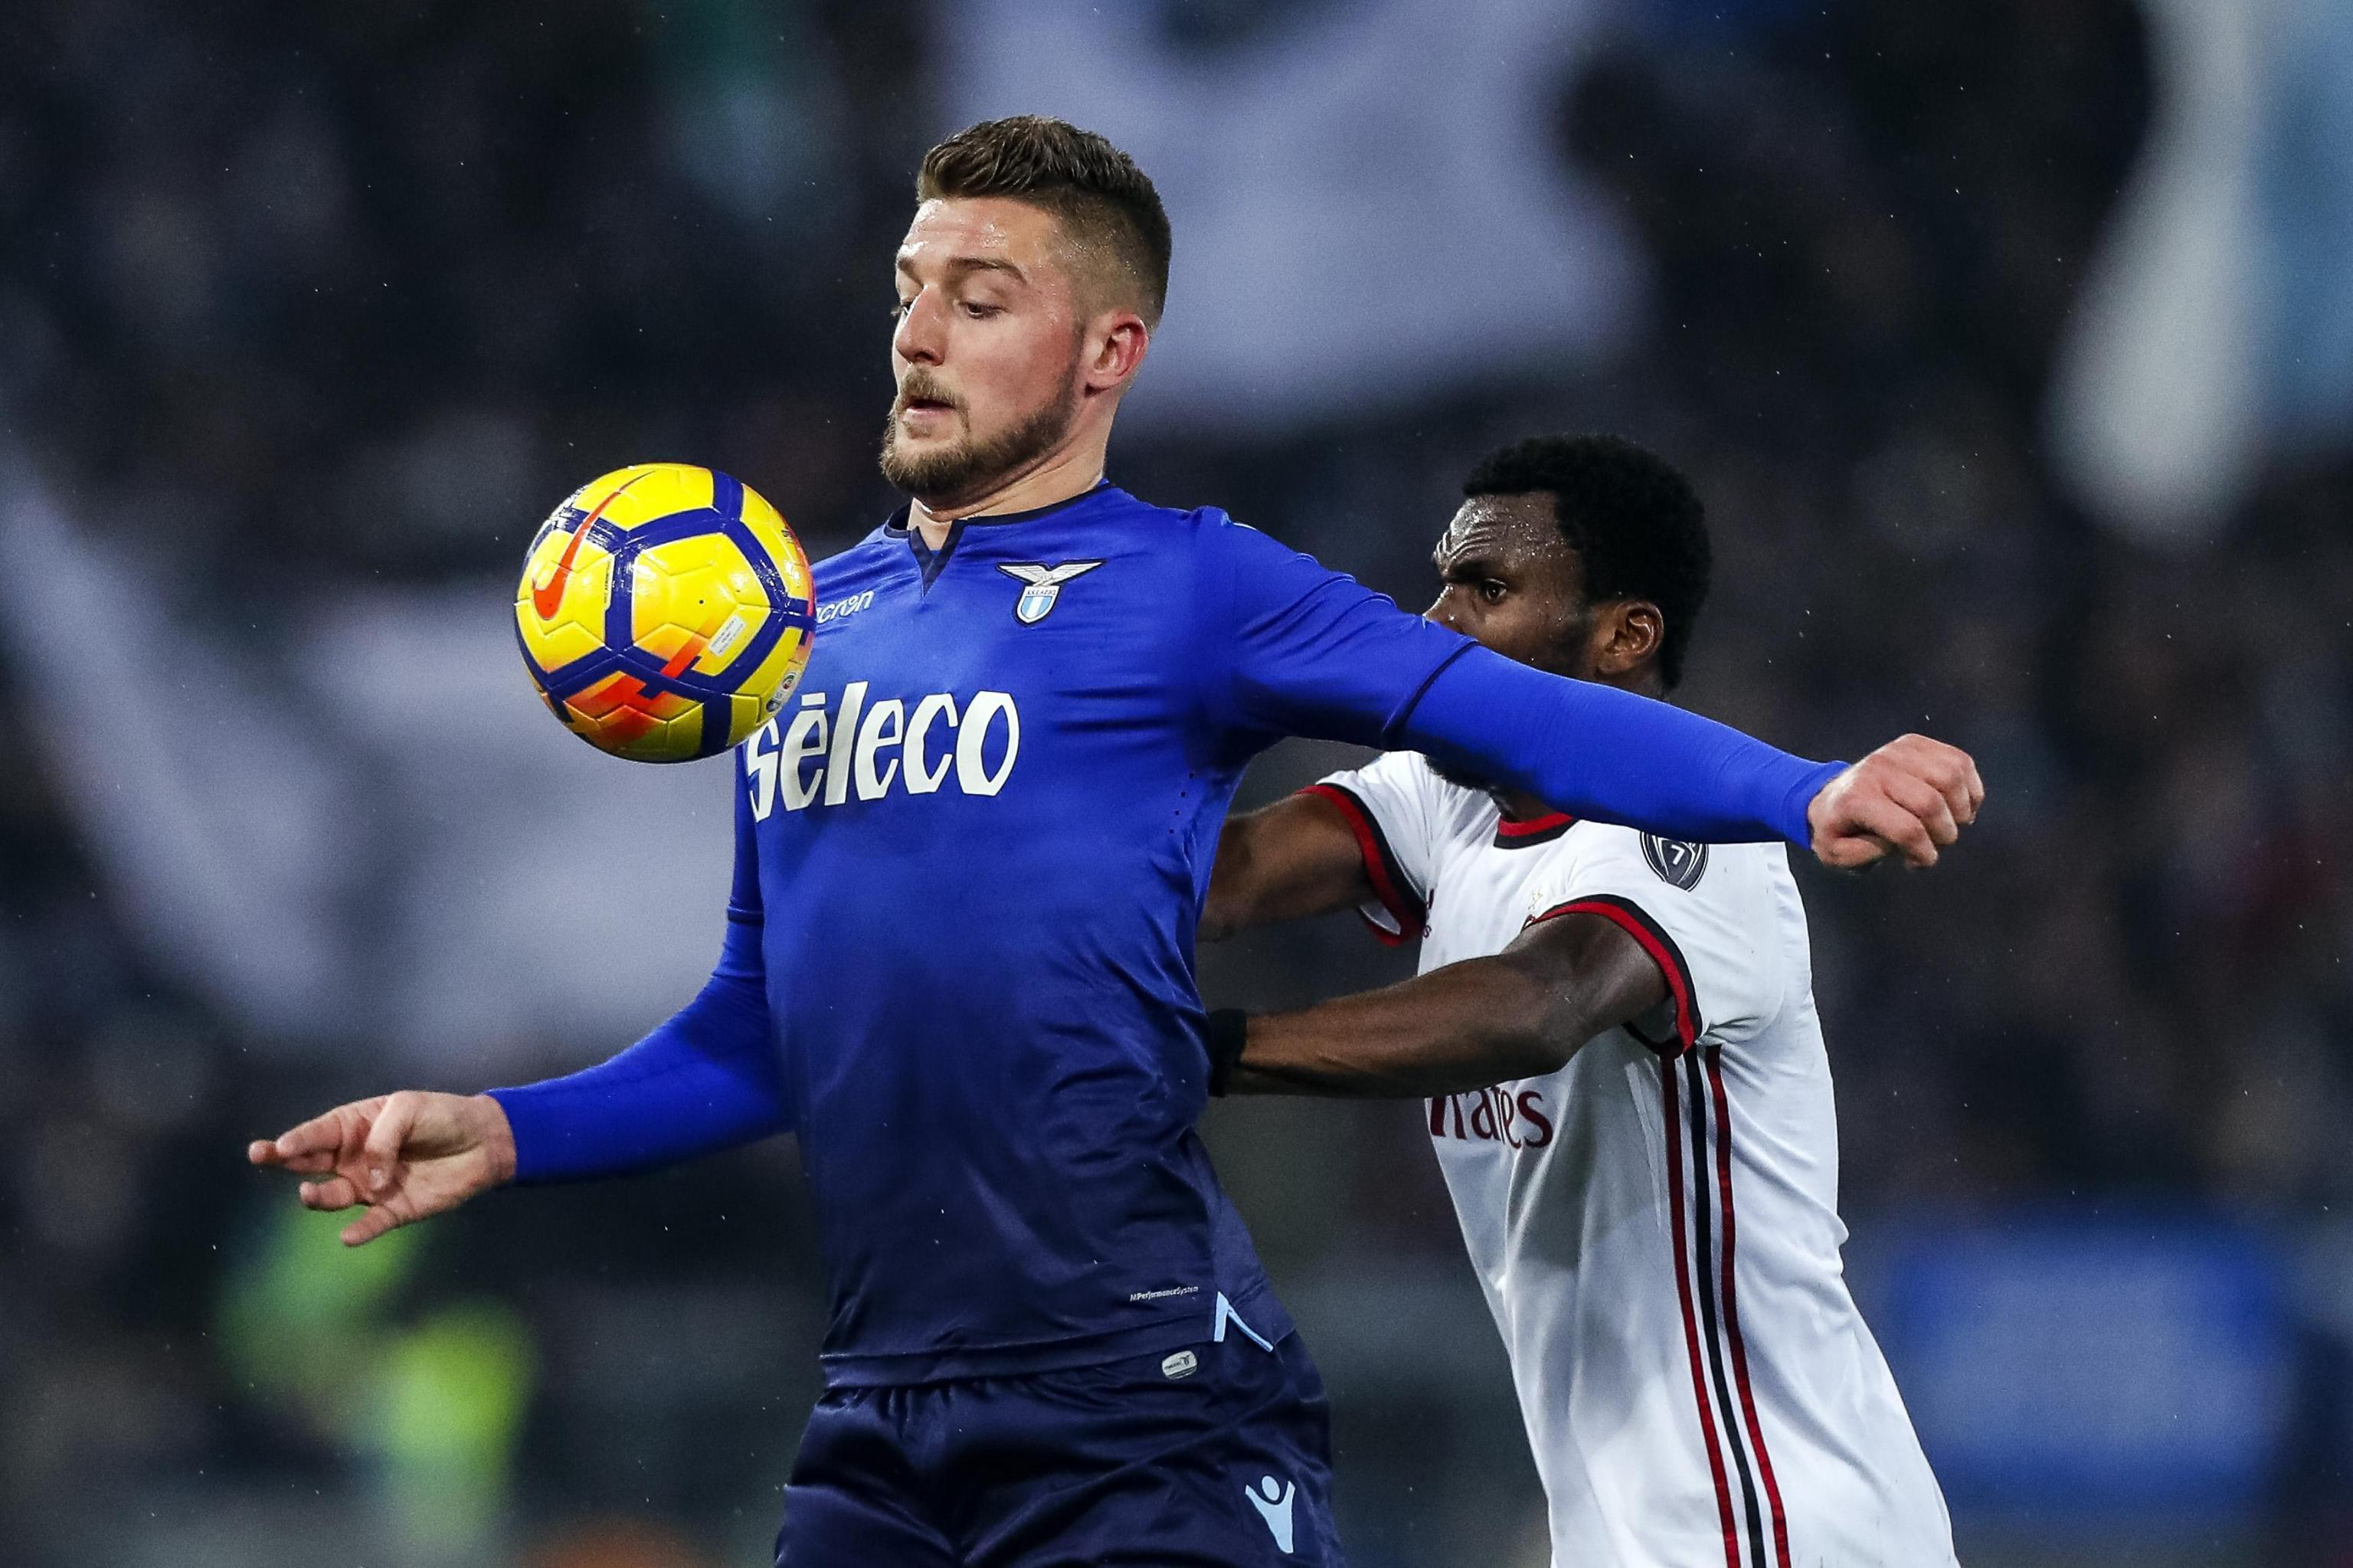 Lazio ace Sergej Milinkovic-Savic is beginning to emerge as the complete midfielder